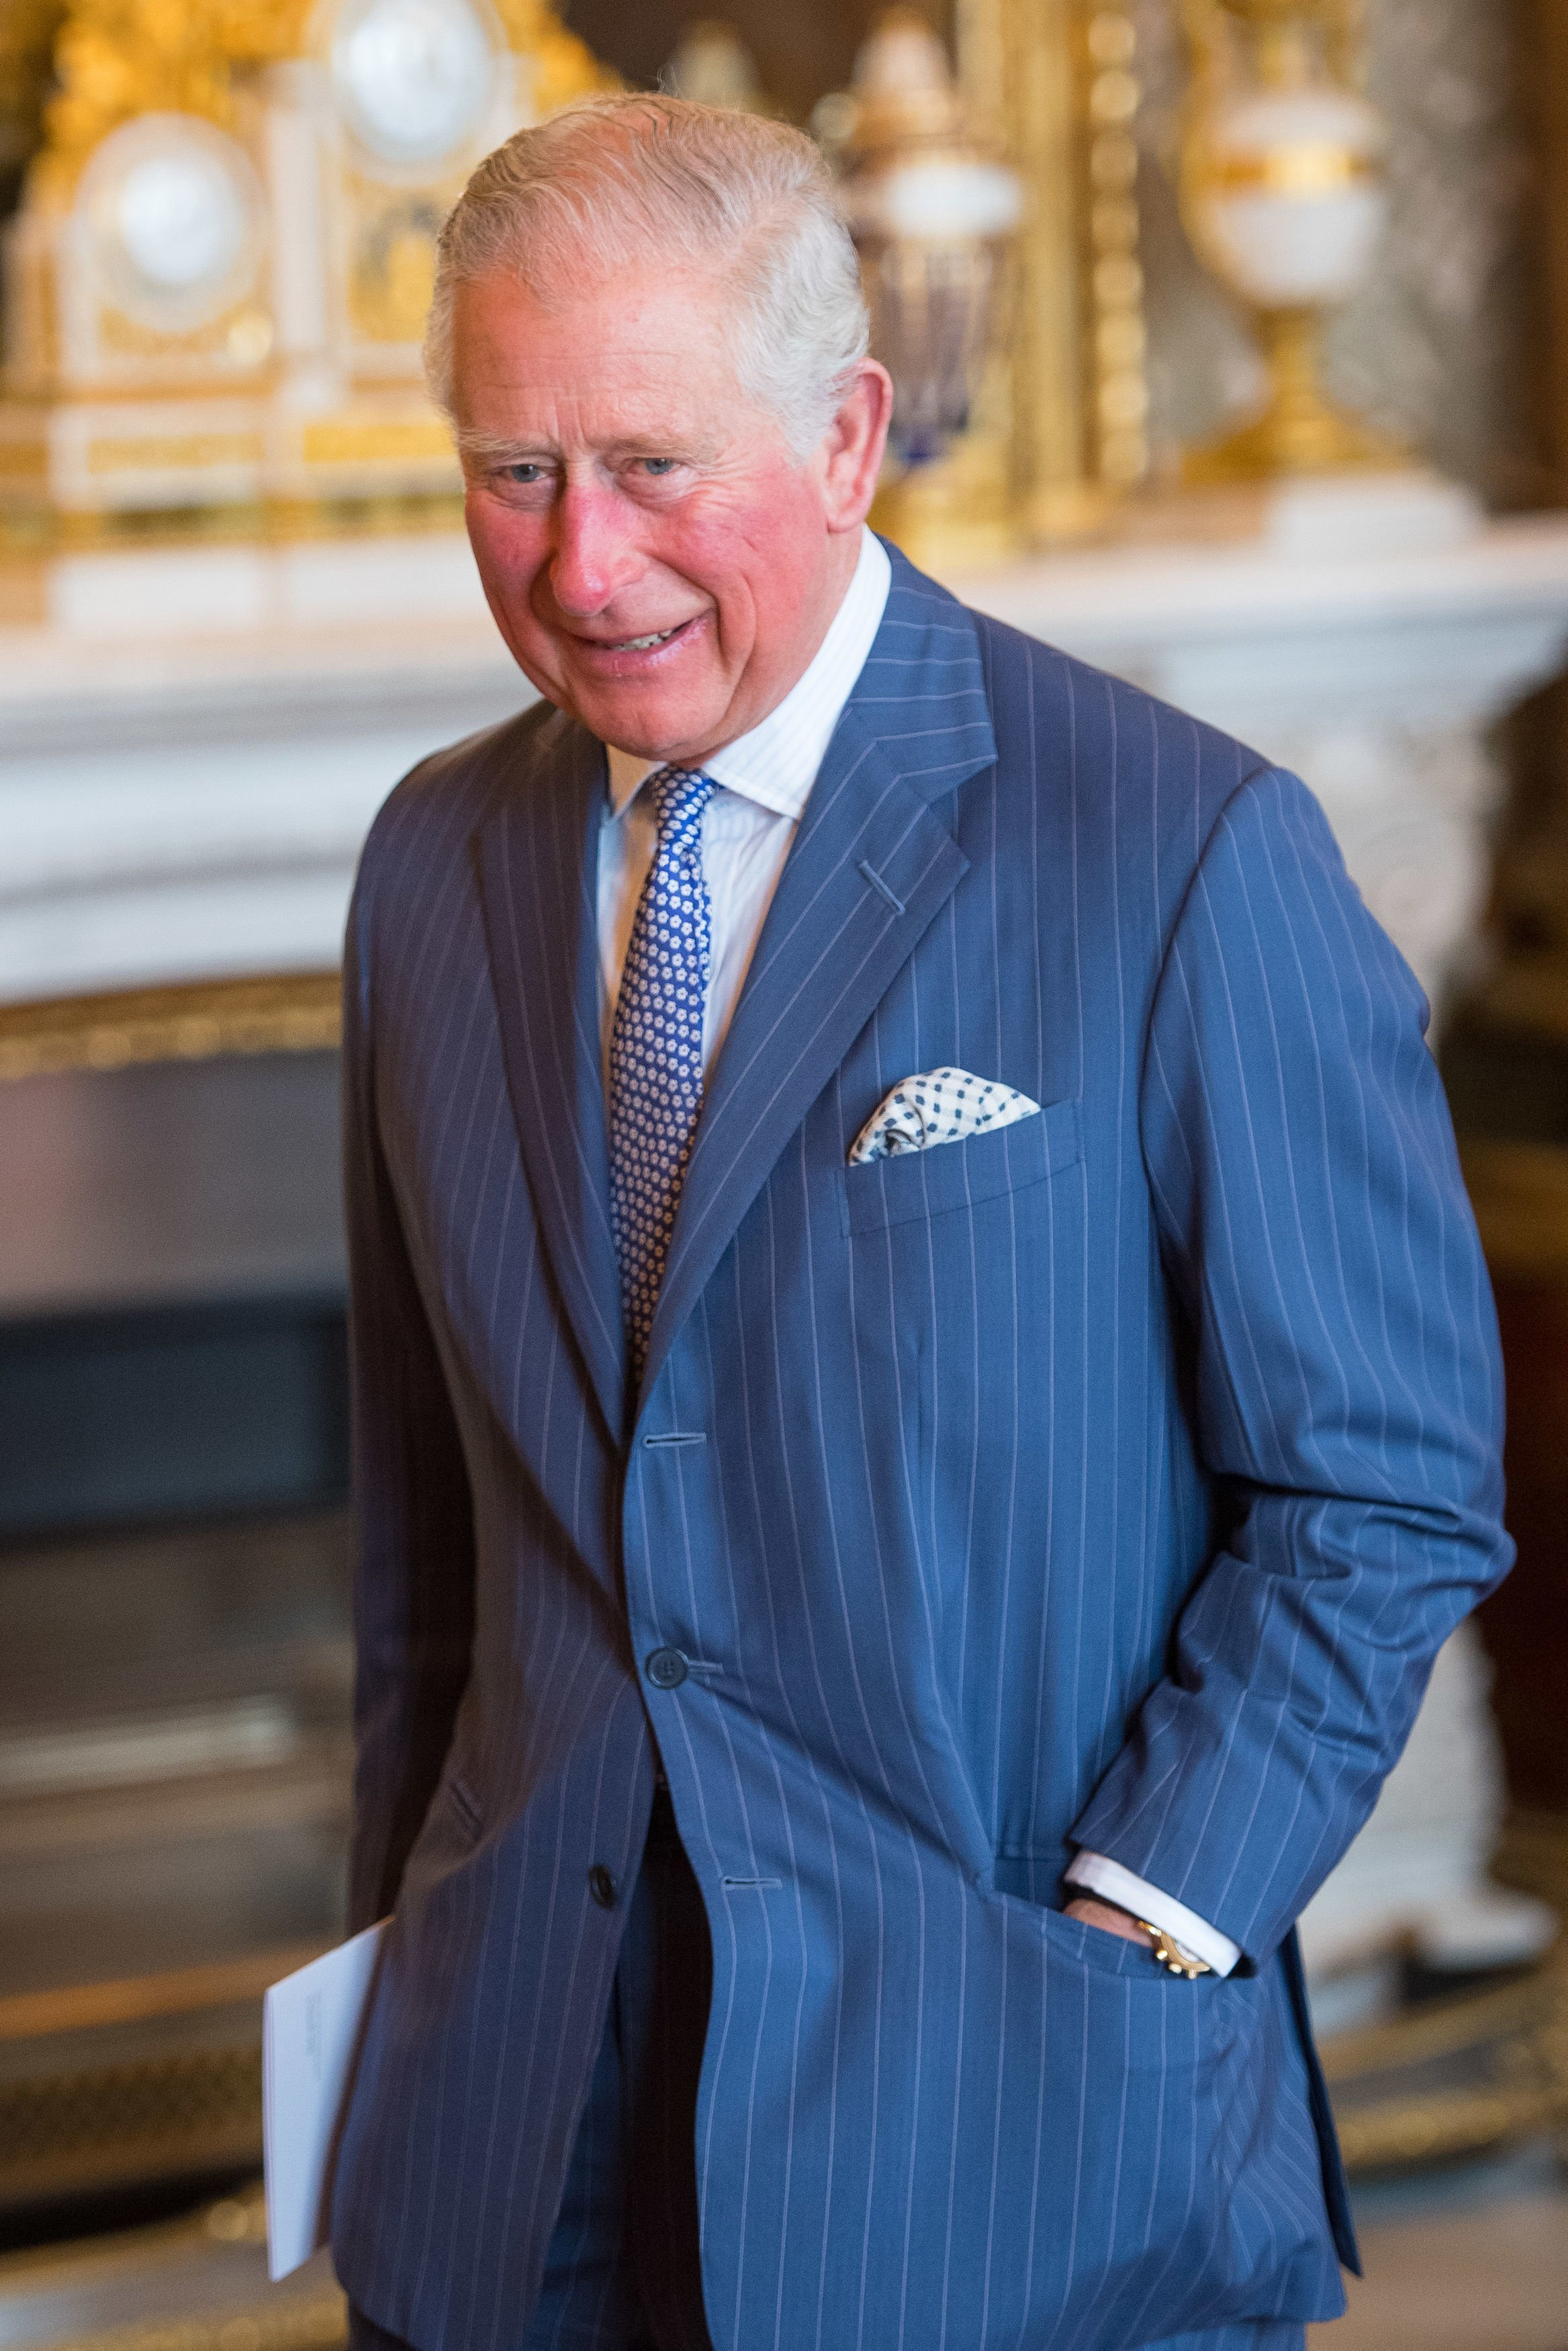 Prince Charles at the 50th anniversary of the Investiture of the Prince of Wales | Photo: Getty Images